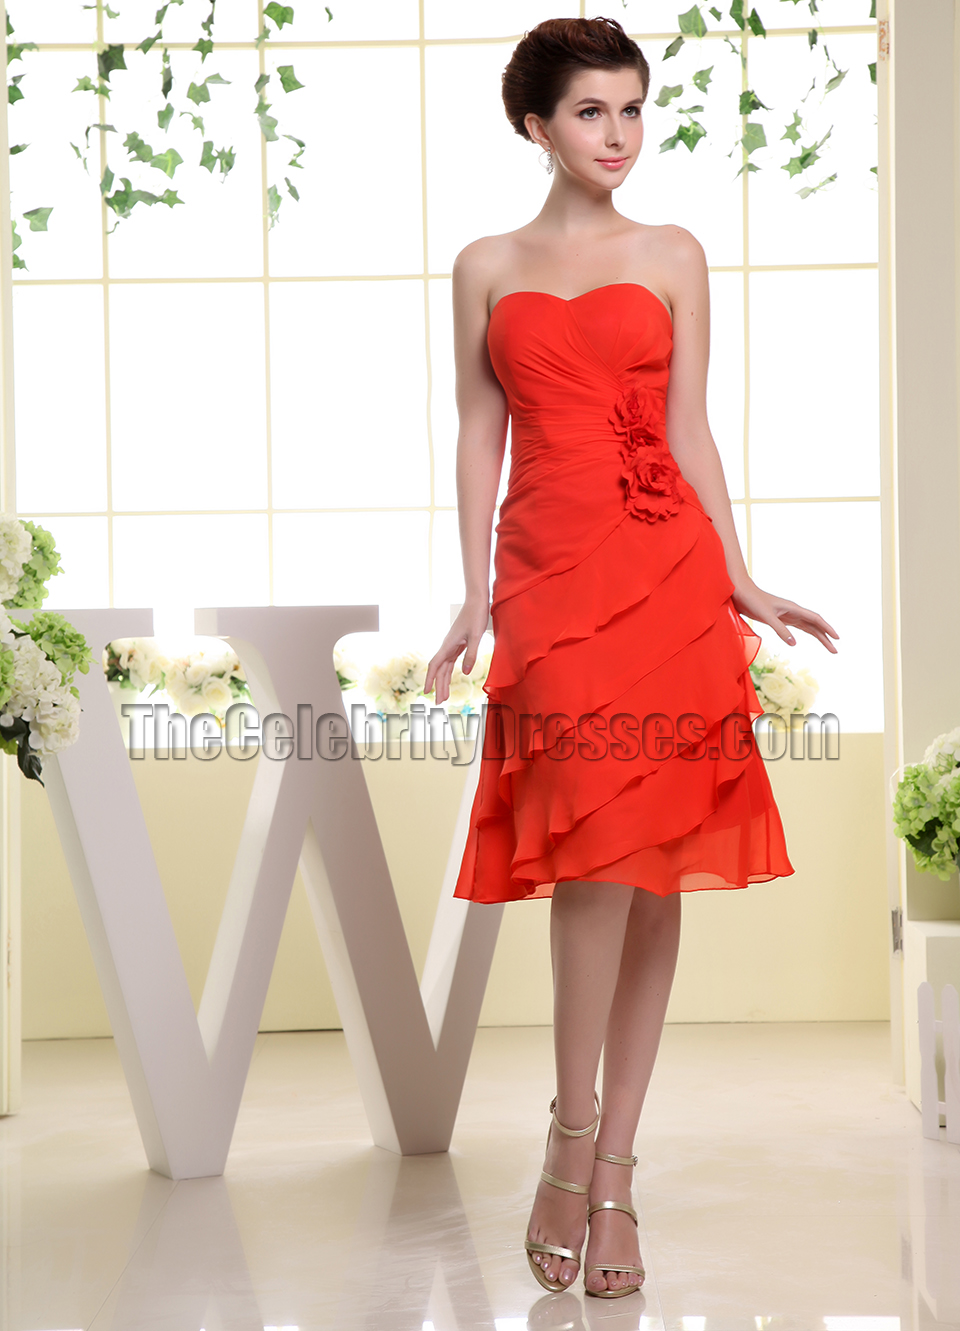 Red sweetheart chiffon cocktail dress bridesmaid dresses red sweetheart chiffon cocktail dress bridesmaid dresses thecelebritydresses ombrellifo Image collections